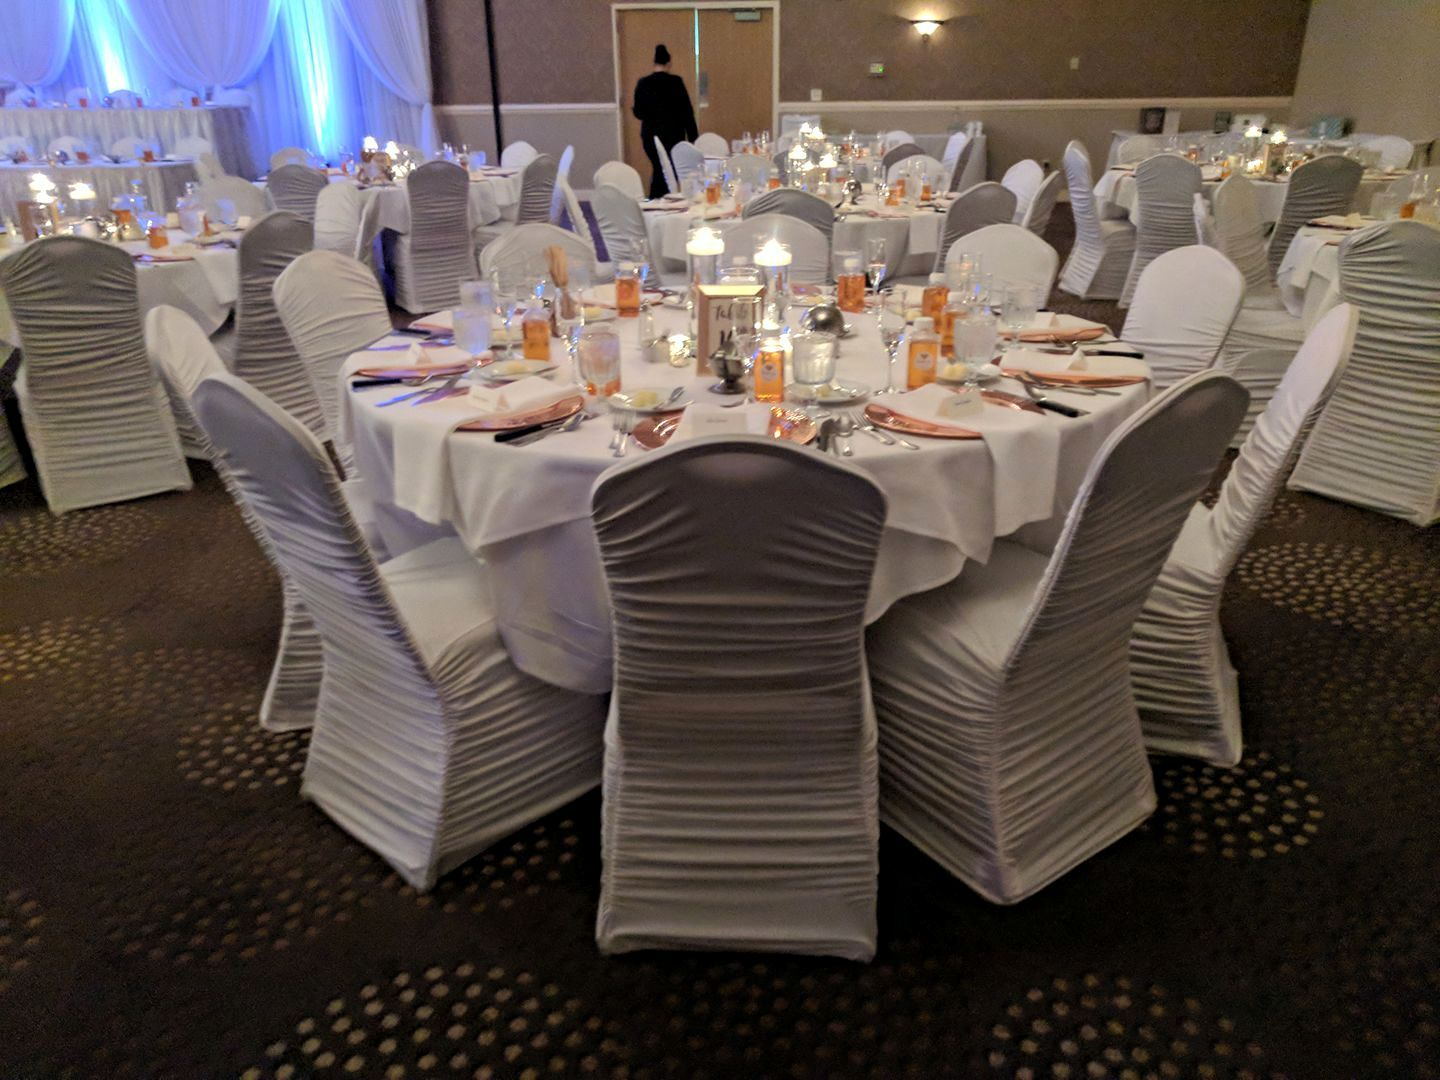 Chair Covers For Wedding Reception 9 23 2017 Double Tree